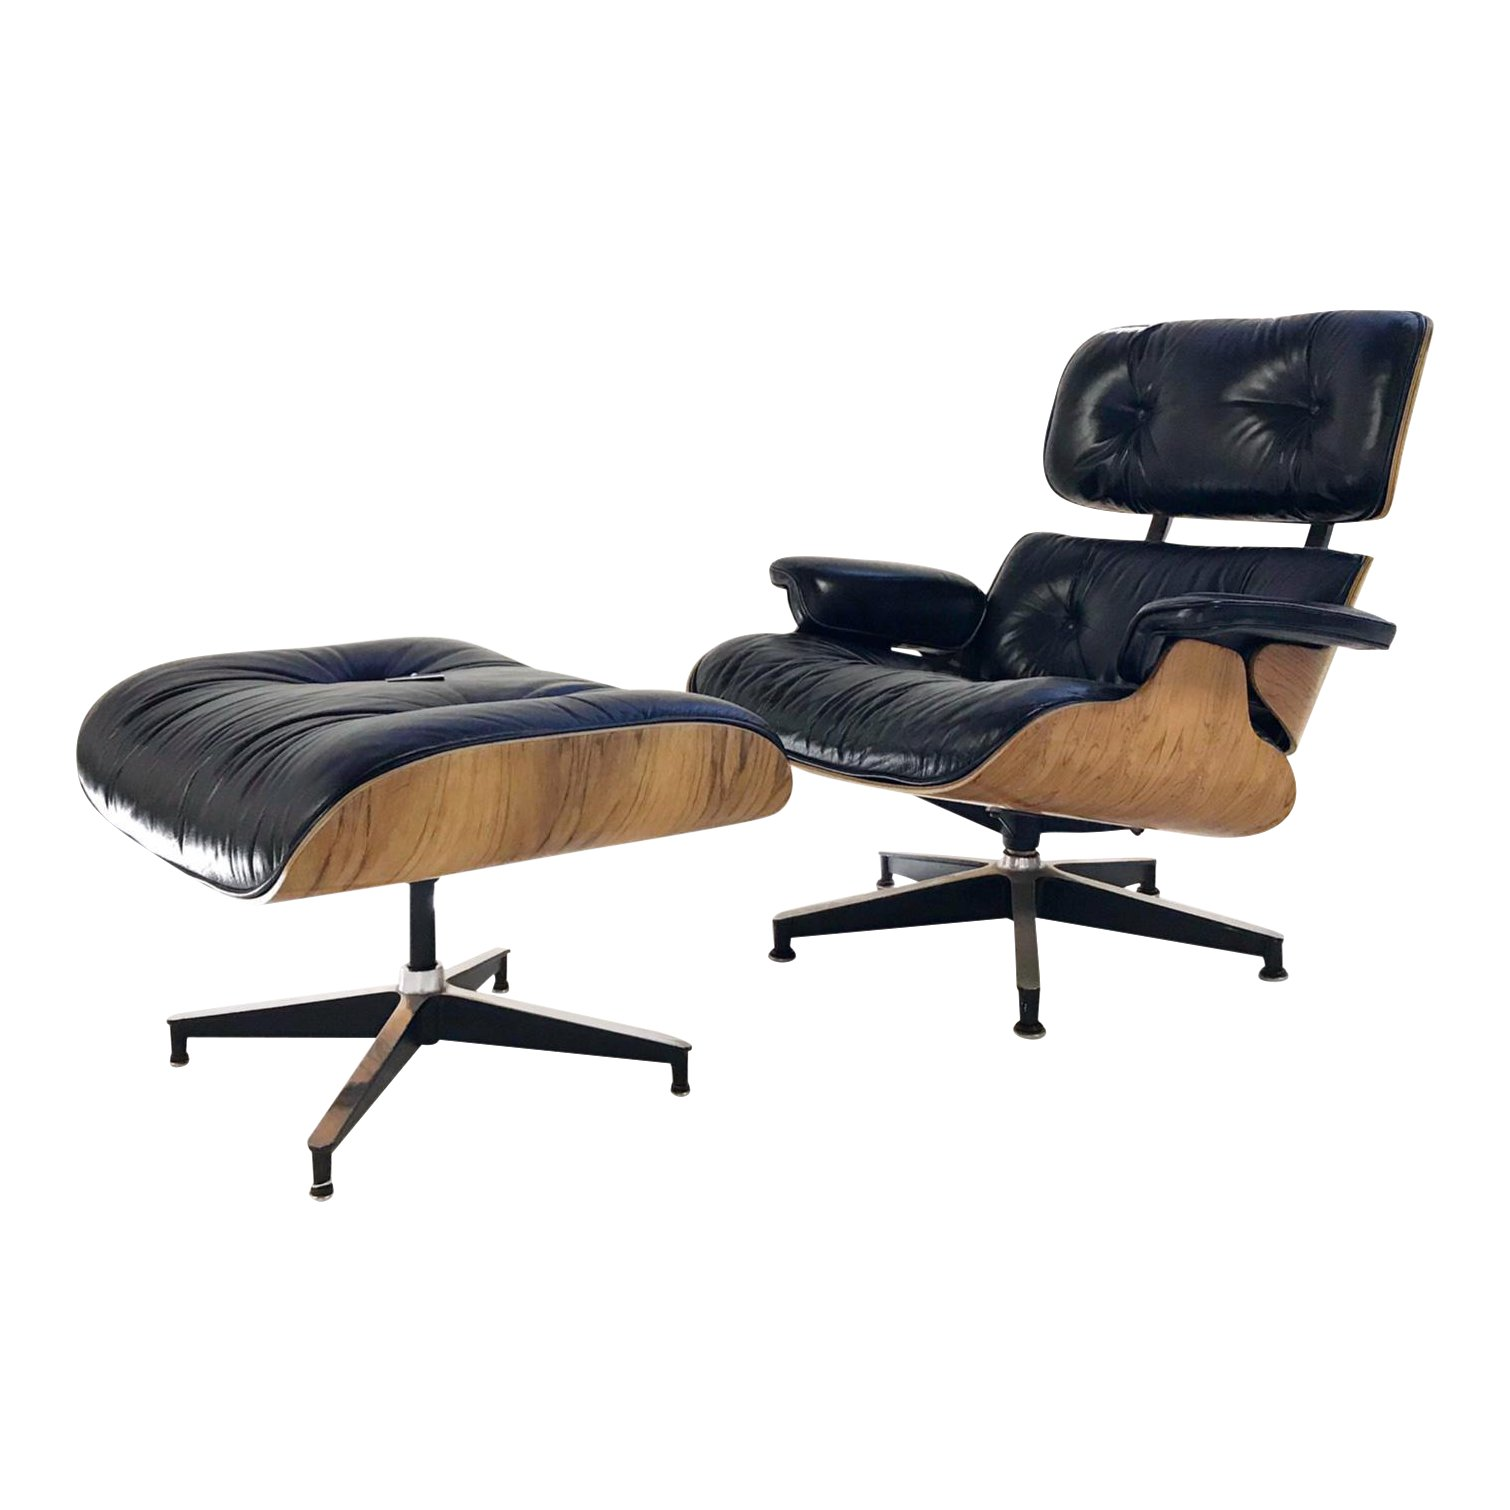 Original Eames Chair Eames Chair Original Price Wohn Design